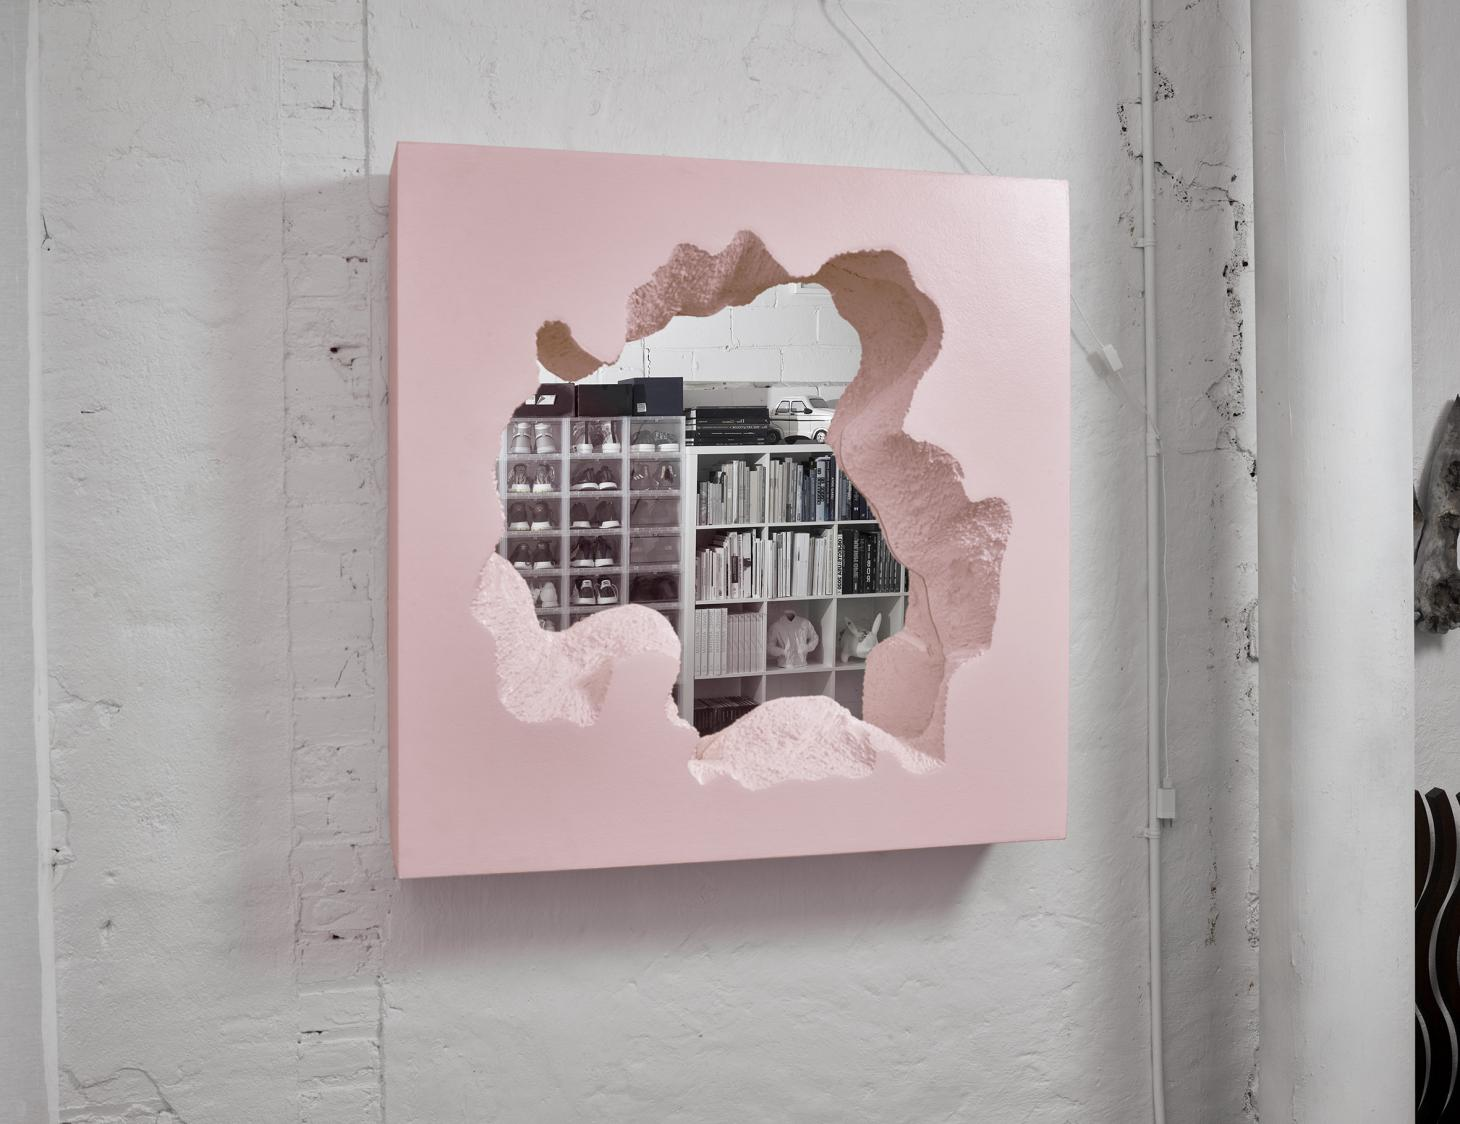 Pink framed mirror reflecting shelves with shoes and books in the Snarkitecture New York studio